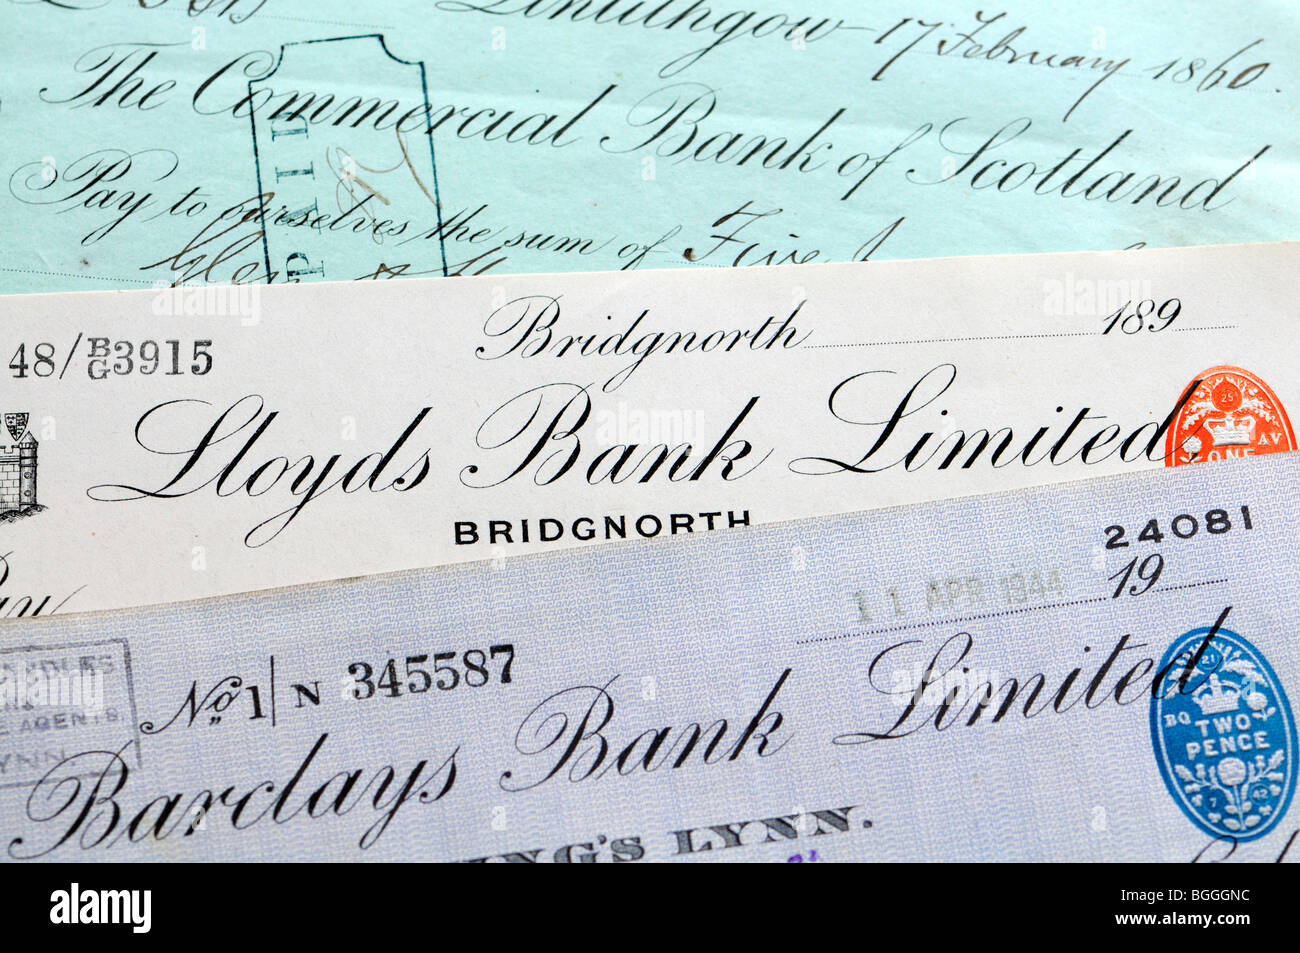 Old bank cheques - Stock Image